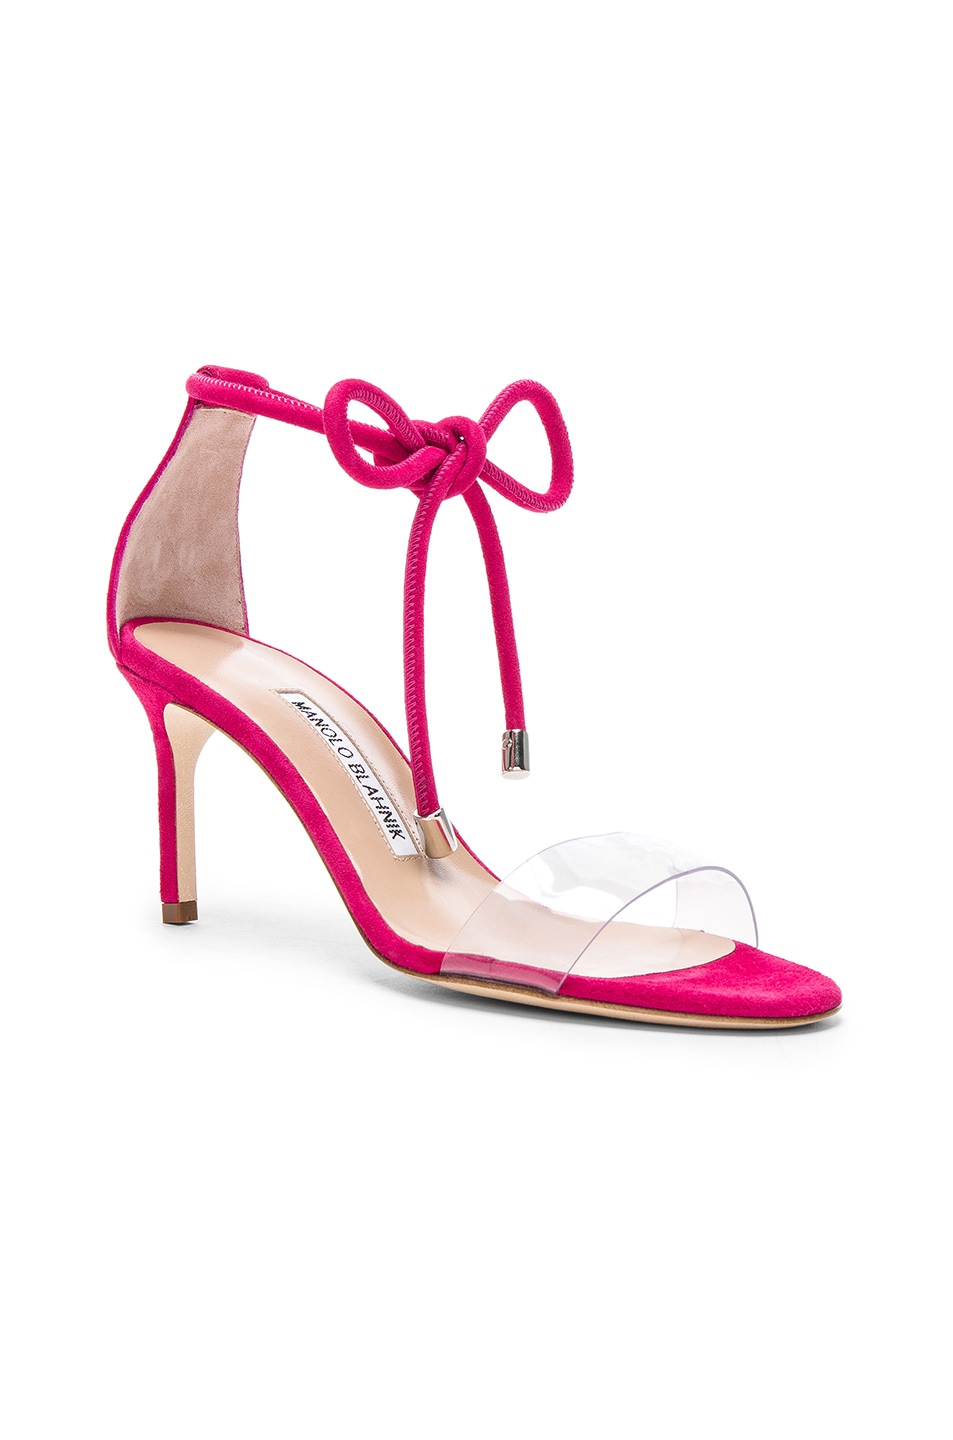 Image 2 of Manolo Blahnik Suede Estro 70 Sandals in Fuxia Suede